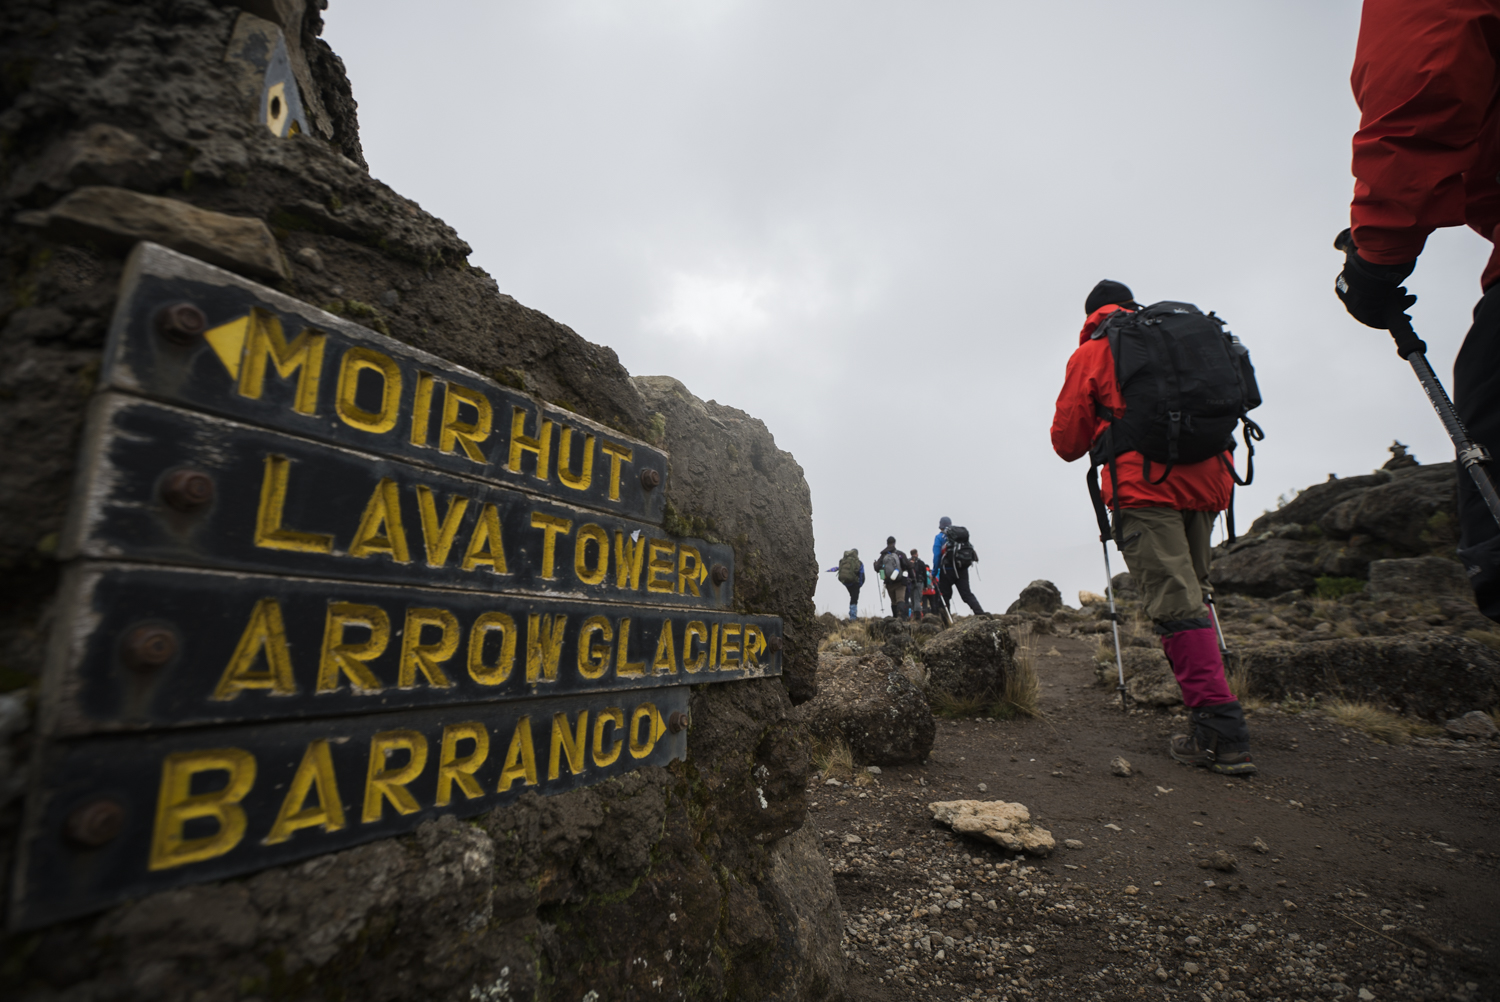 A sign points the way on Mt. Kilimanjaro.